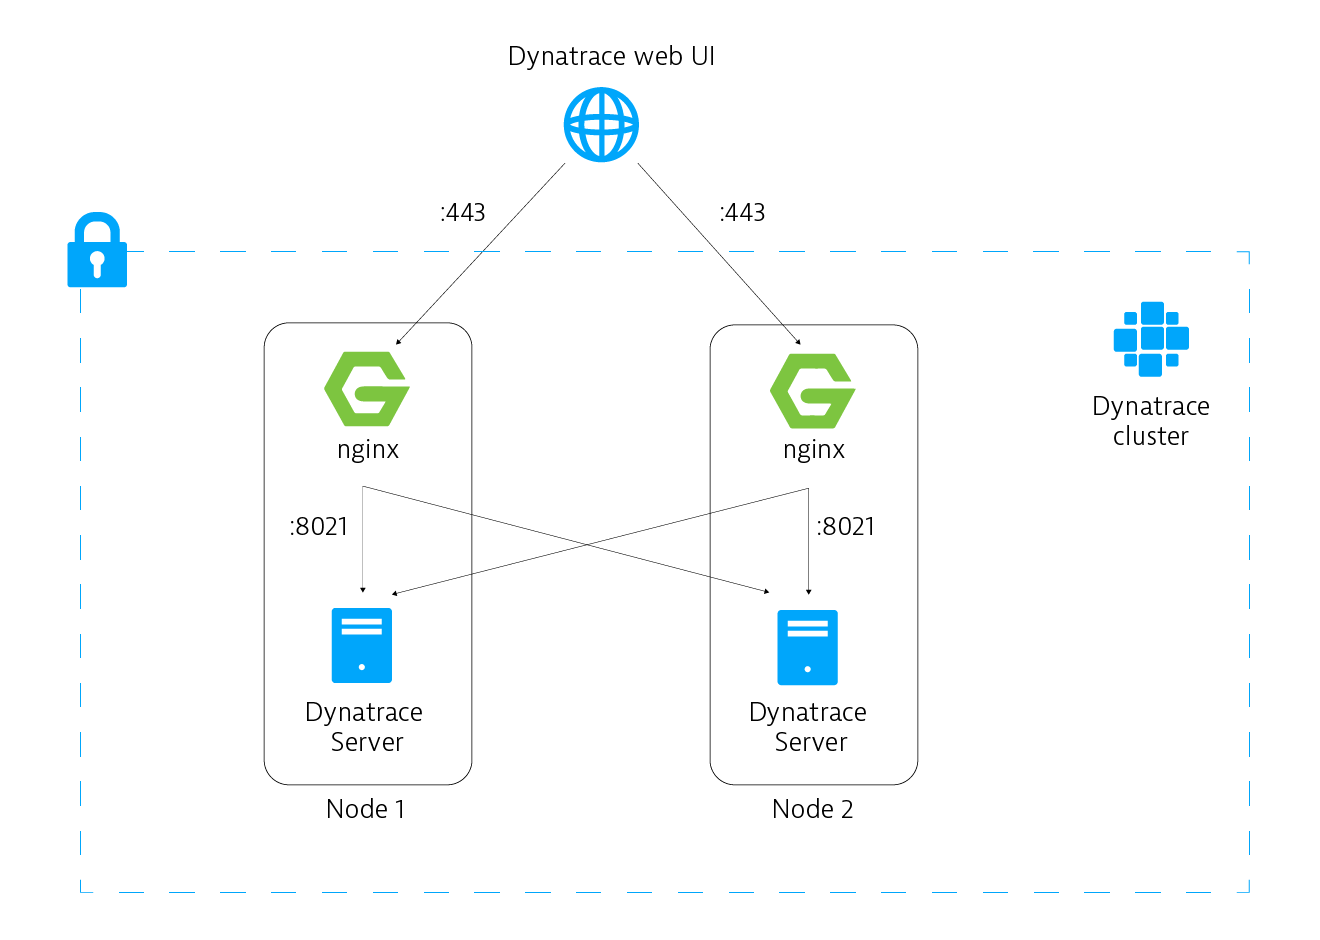 Session stickiness and persistence across Dynatrace Managed cluster